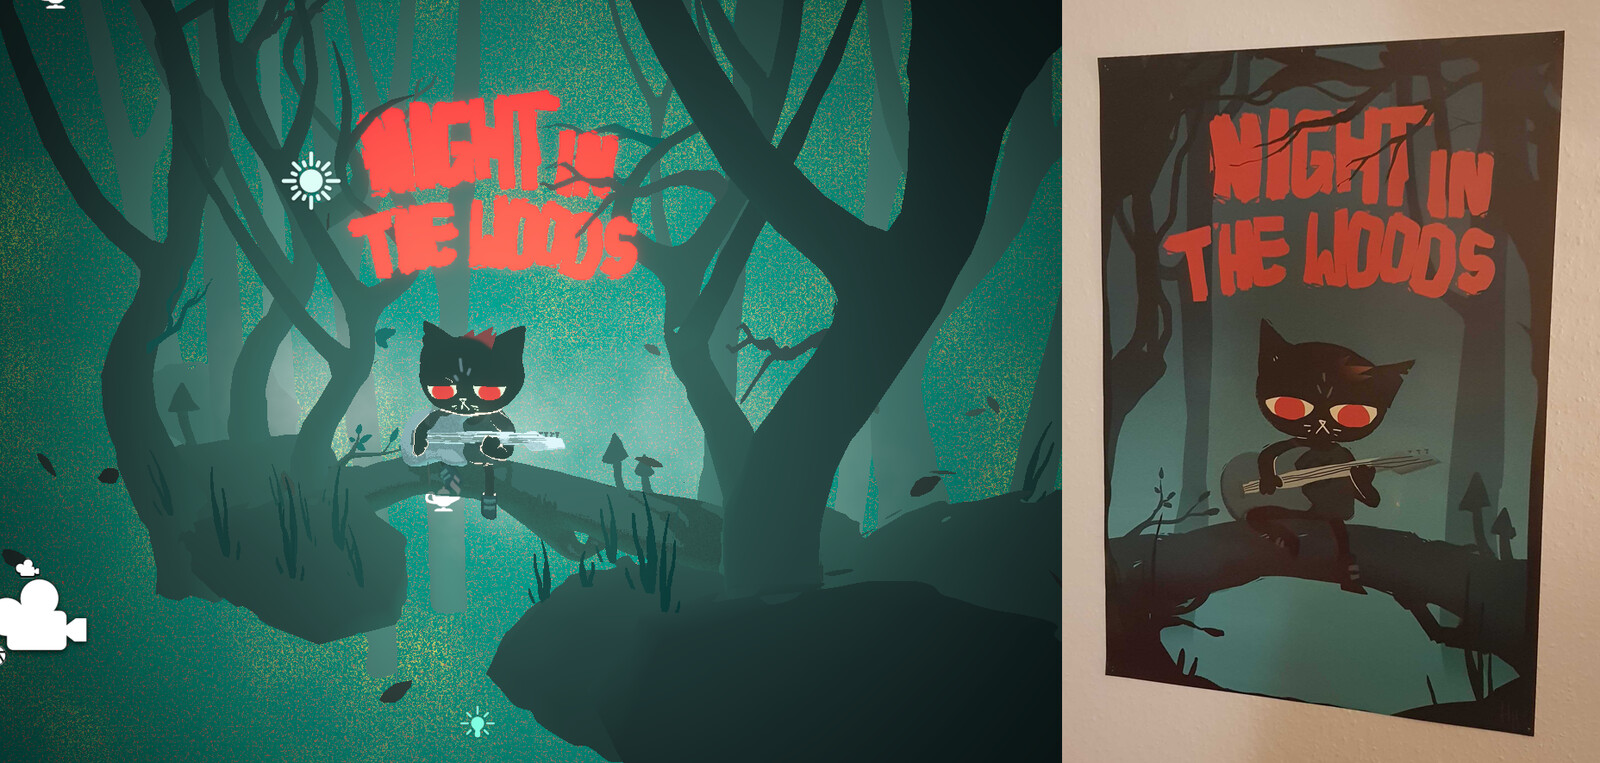 Final scene in Unity (left), and original poster art (right)